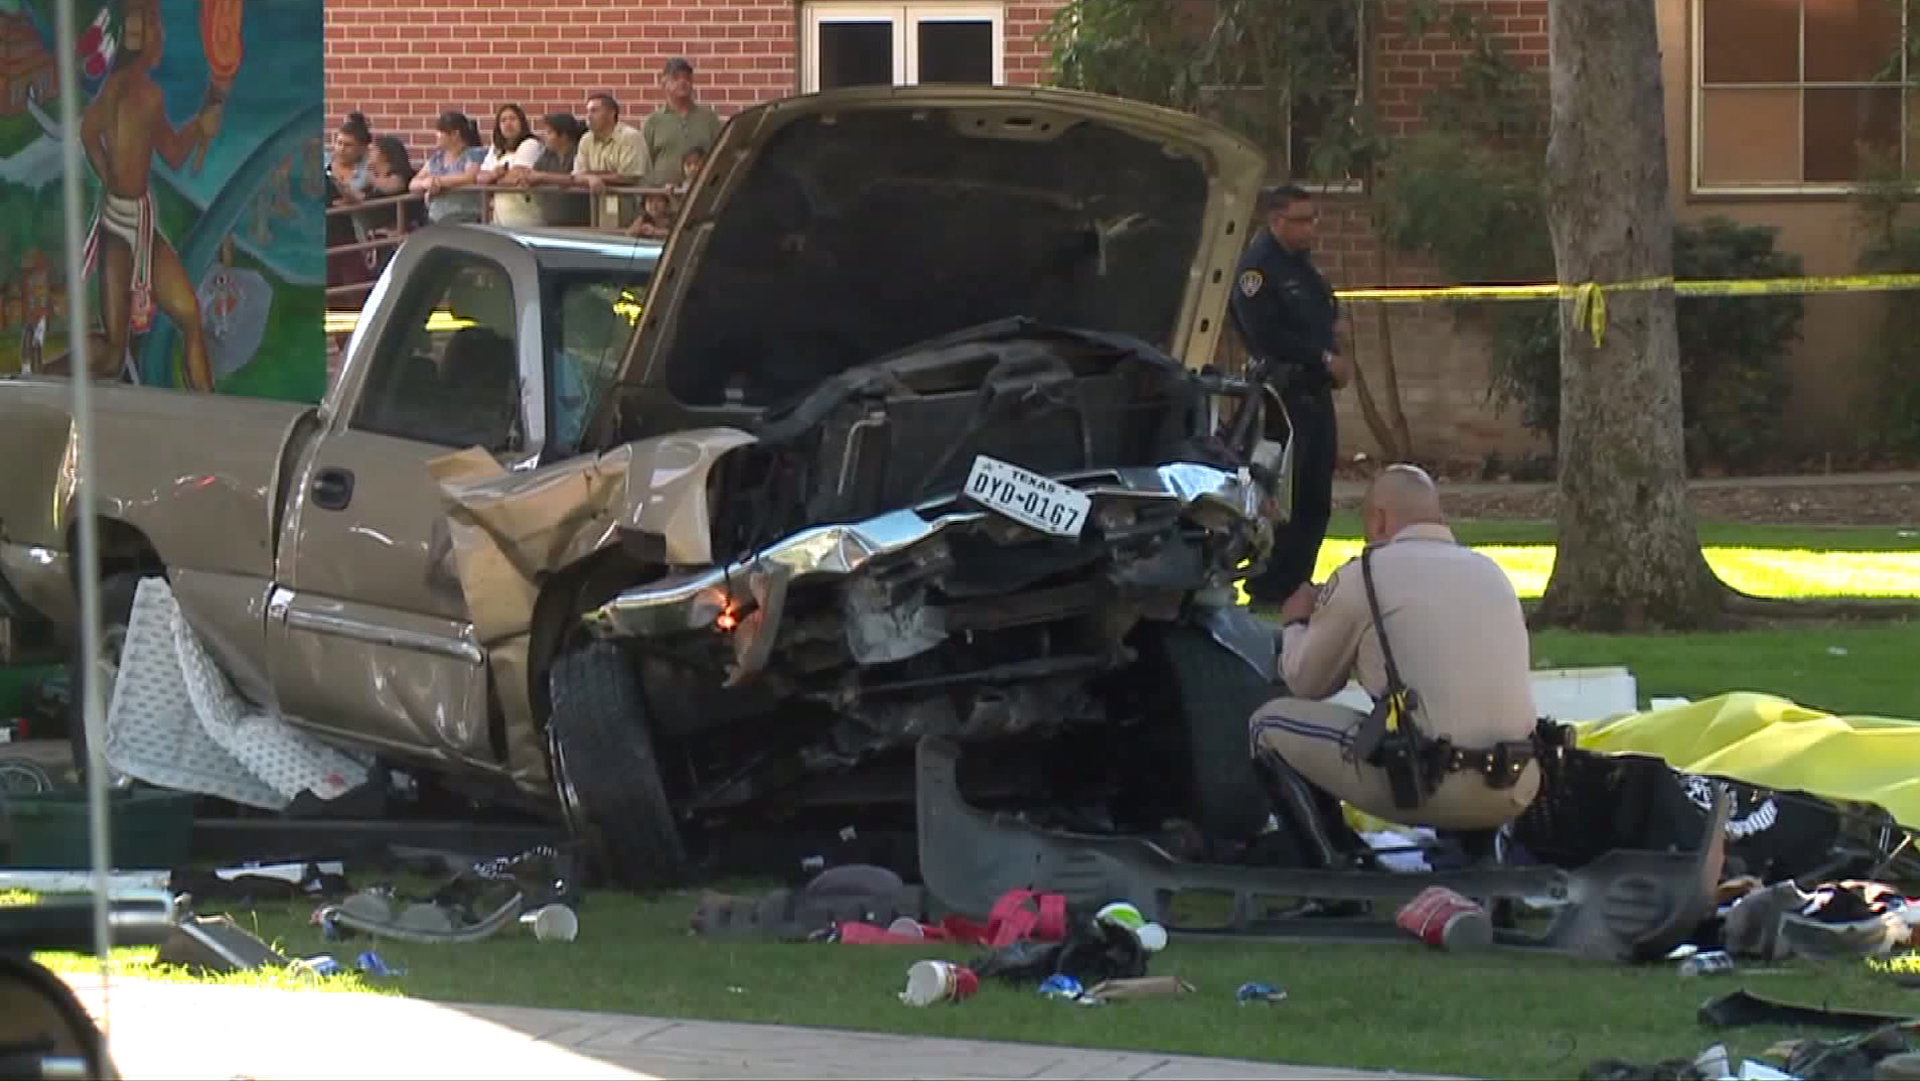 The pickup driven by a Navy technician landed at Chicano Park after it flew off a ramp to the San Diego Coronado Bridge, killing four people. (Credit: KTLA)